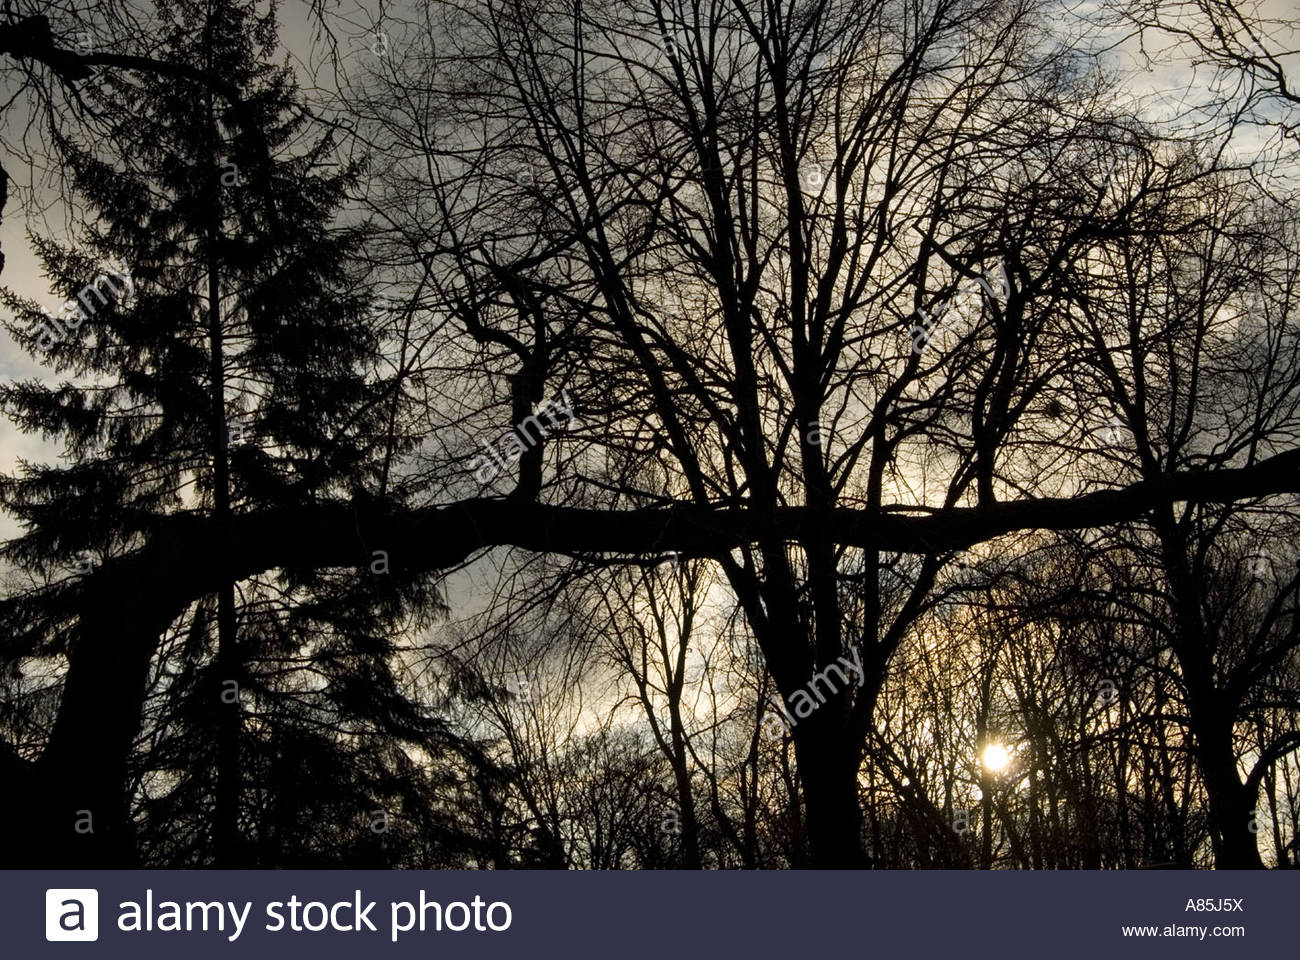 Tree Branches against a winter sky in Michigan - Stock Image